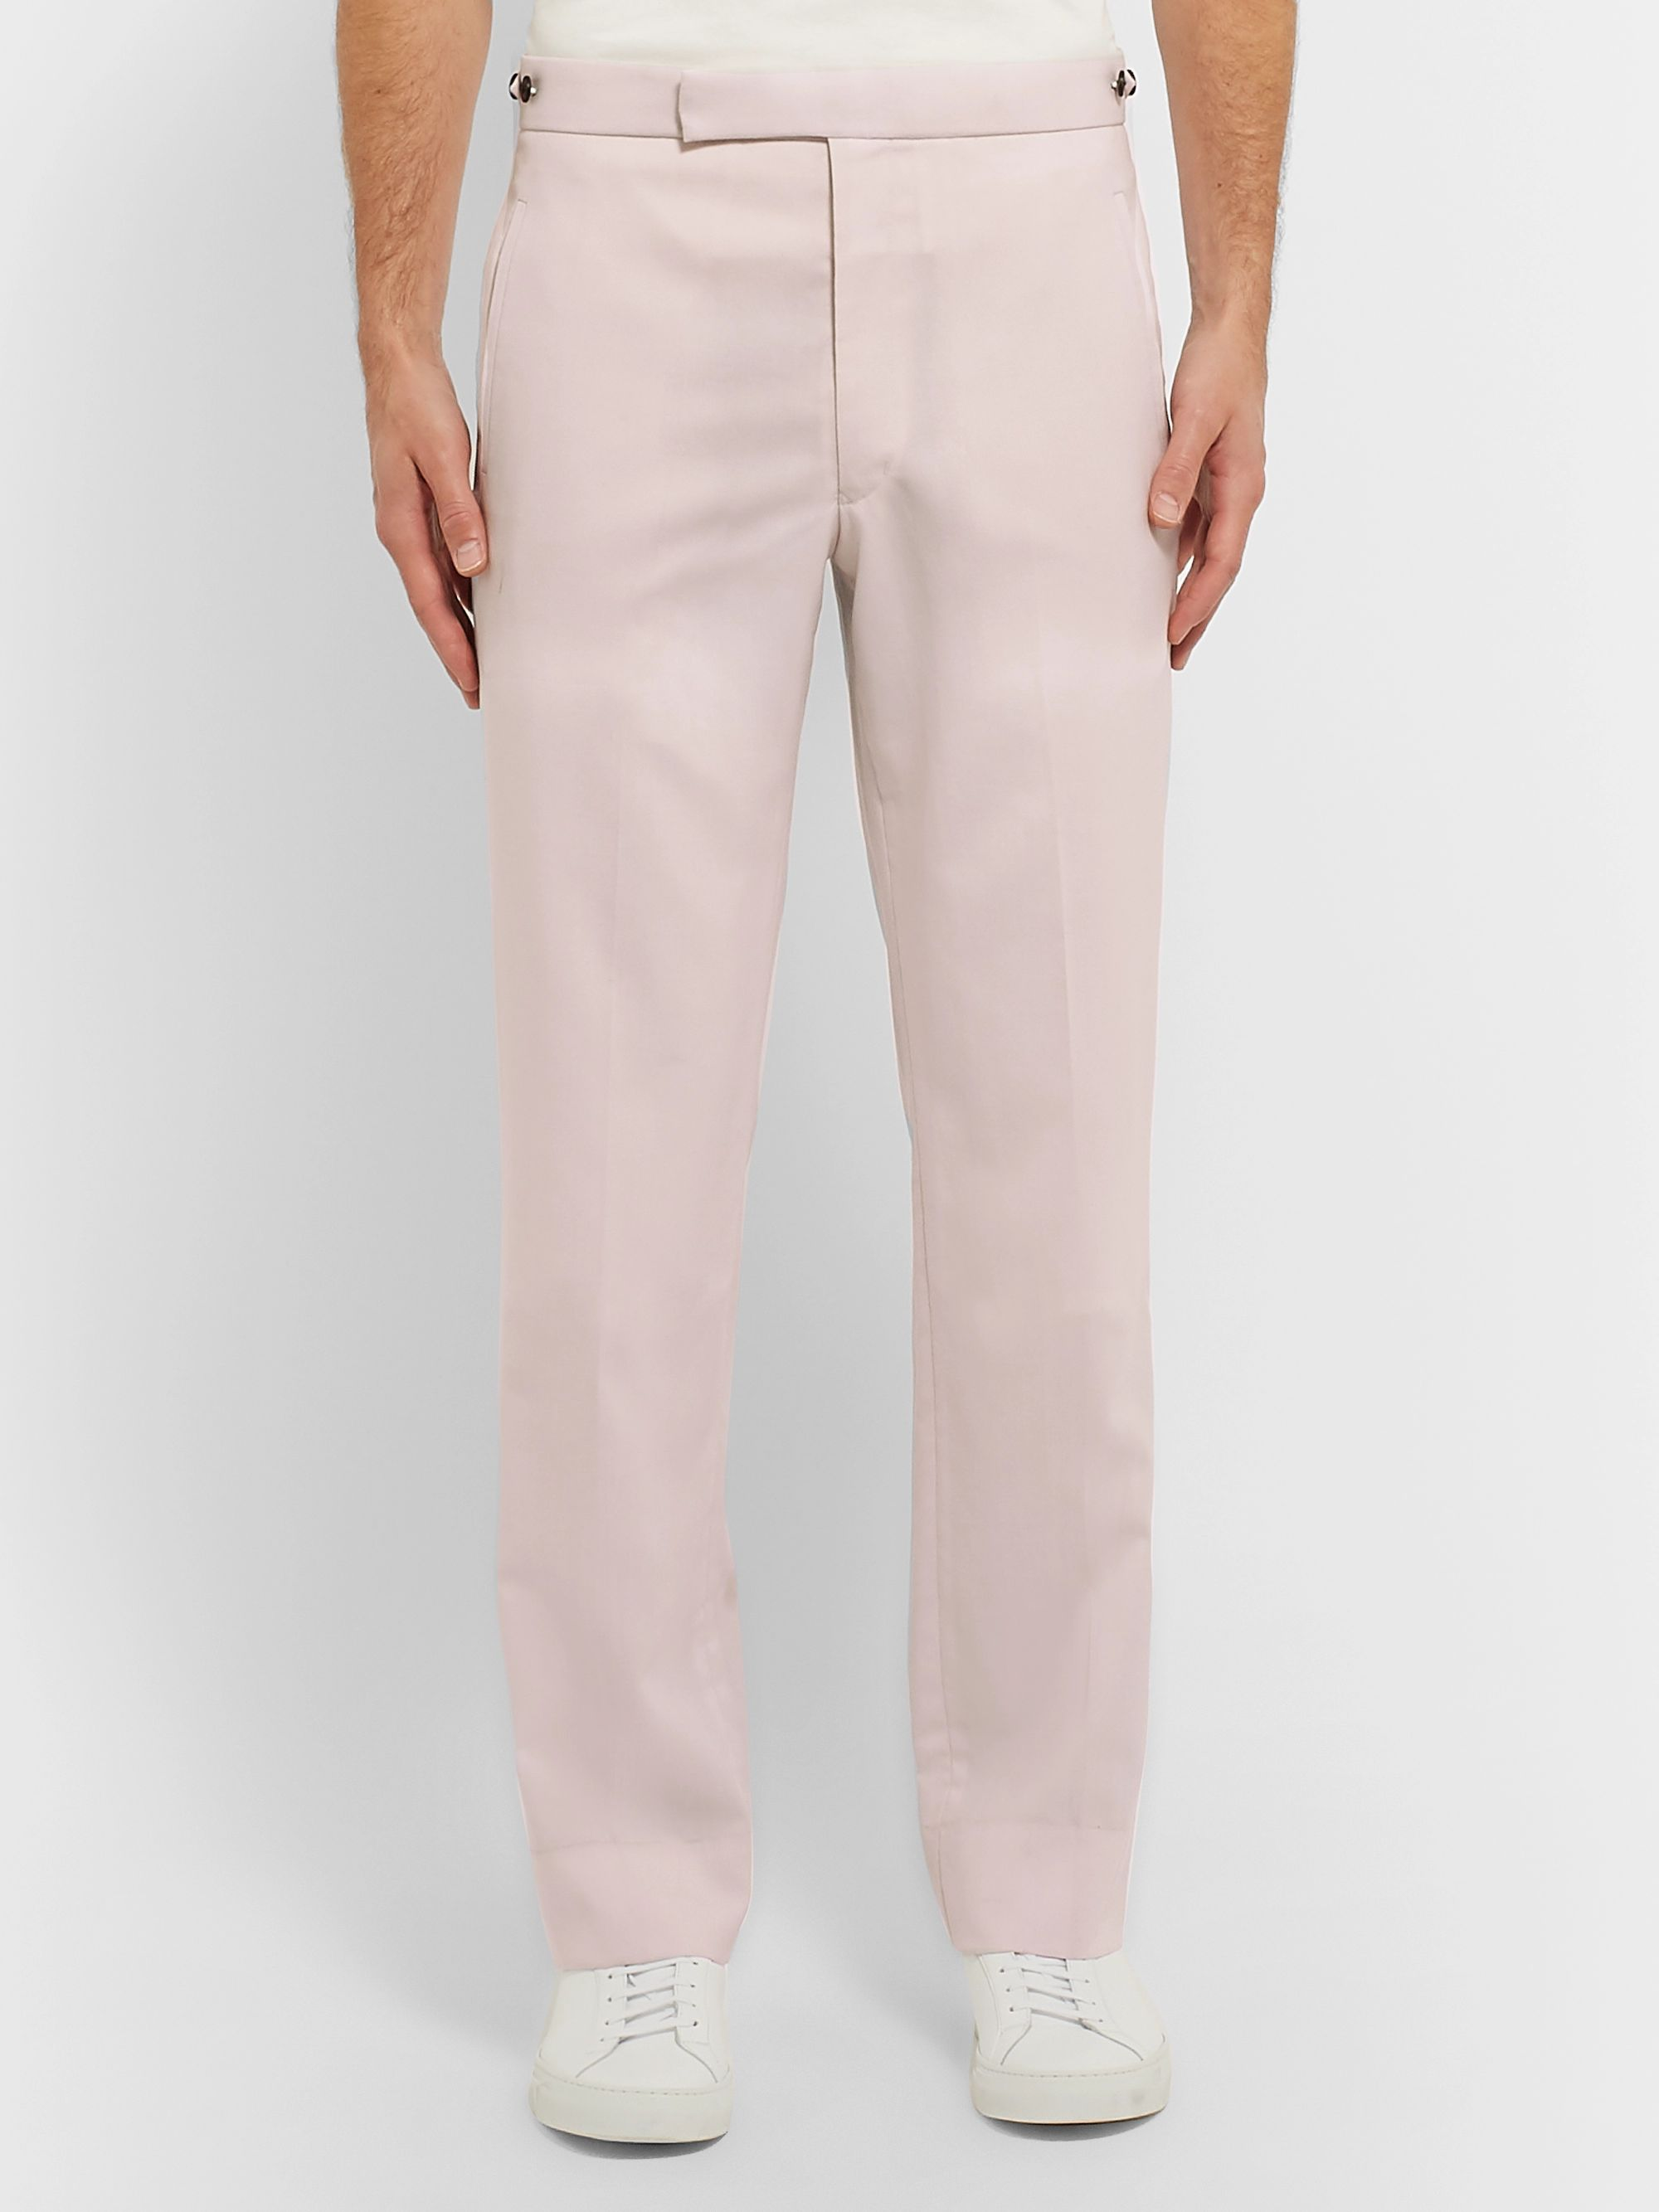 Gabriela Hearst Off-White Wool Suit Trousers